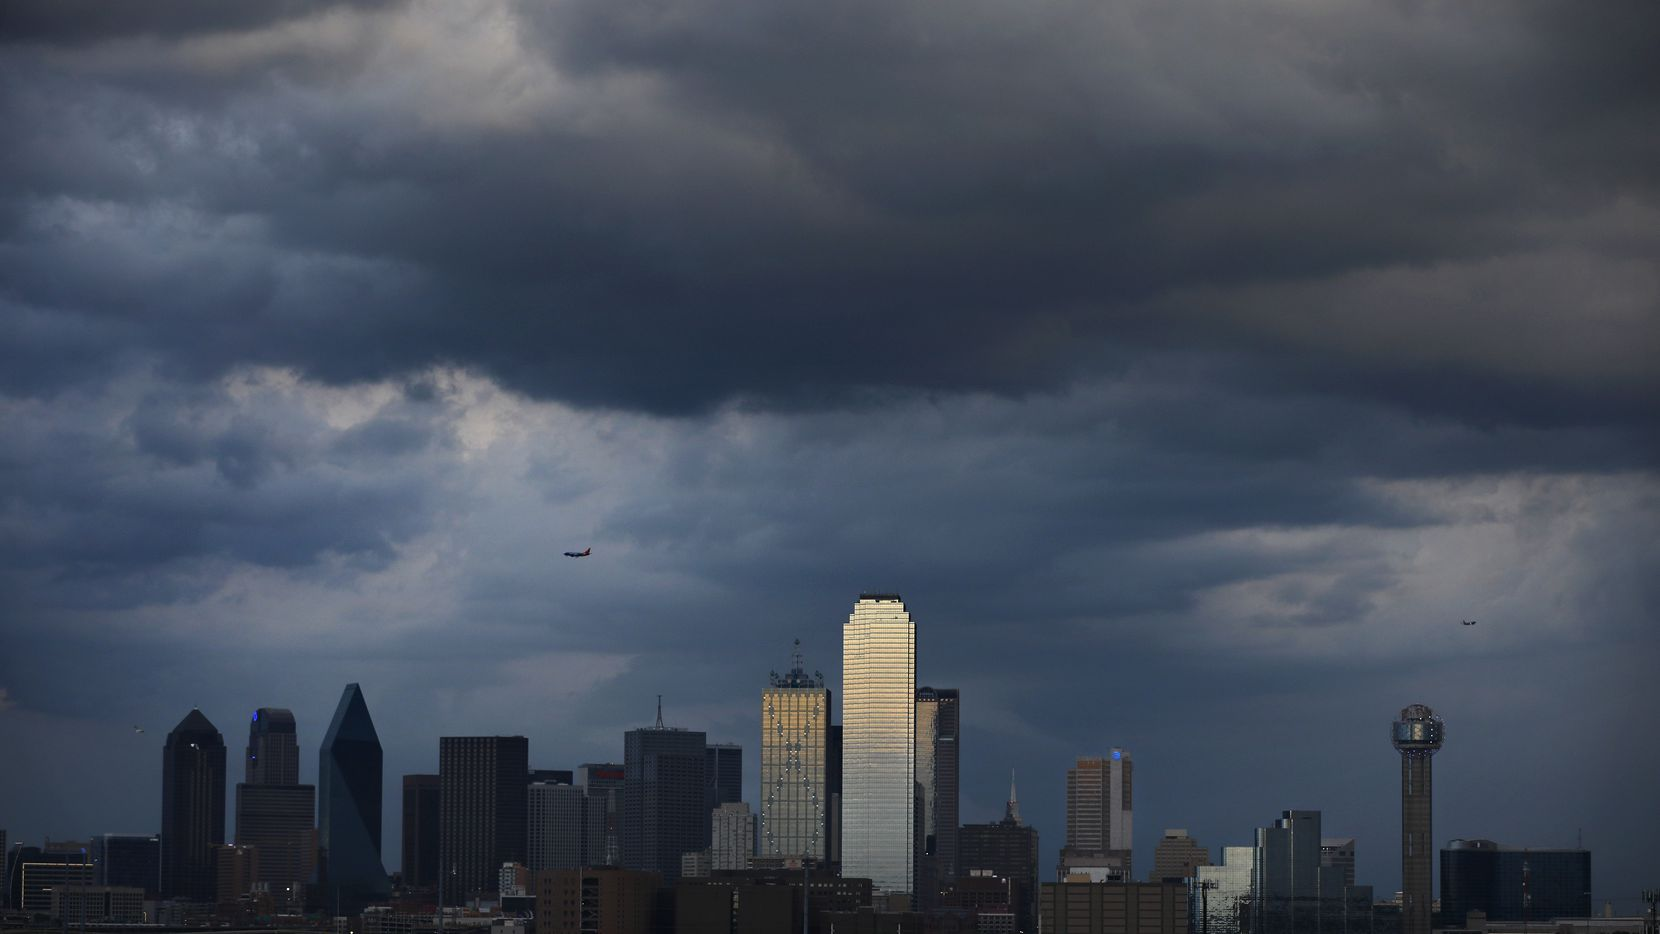 Thunderstorms clear downtown Dallas this evening ushering in north winds and cooler temperatures, Friday, April 6, 2018. Except temperatures in the 30's tomorrow morning.